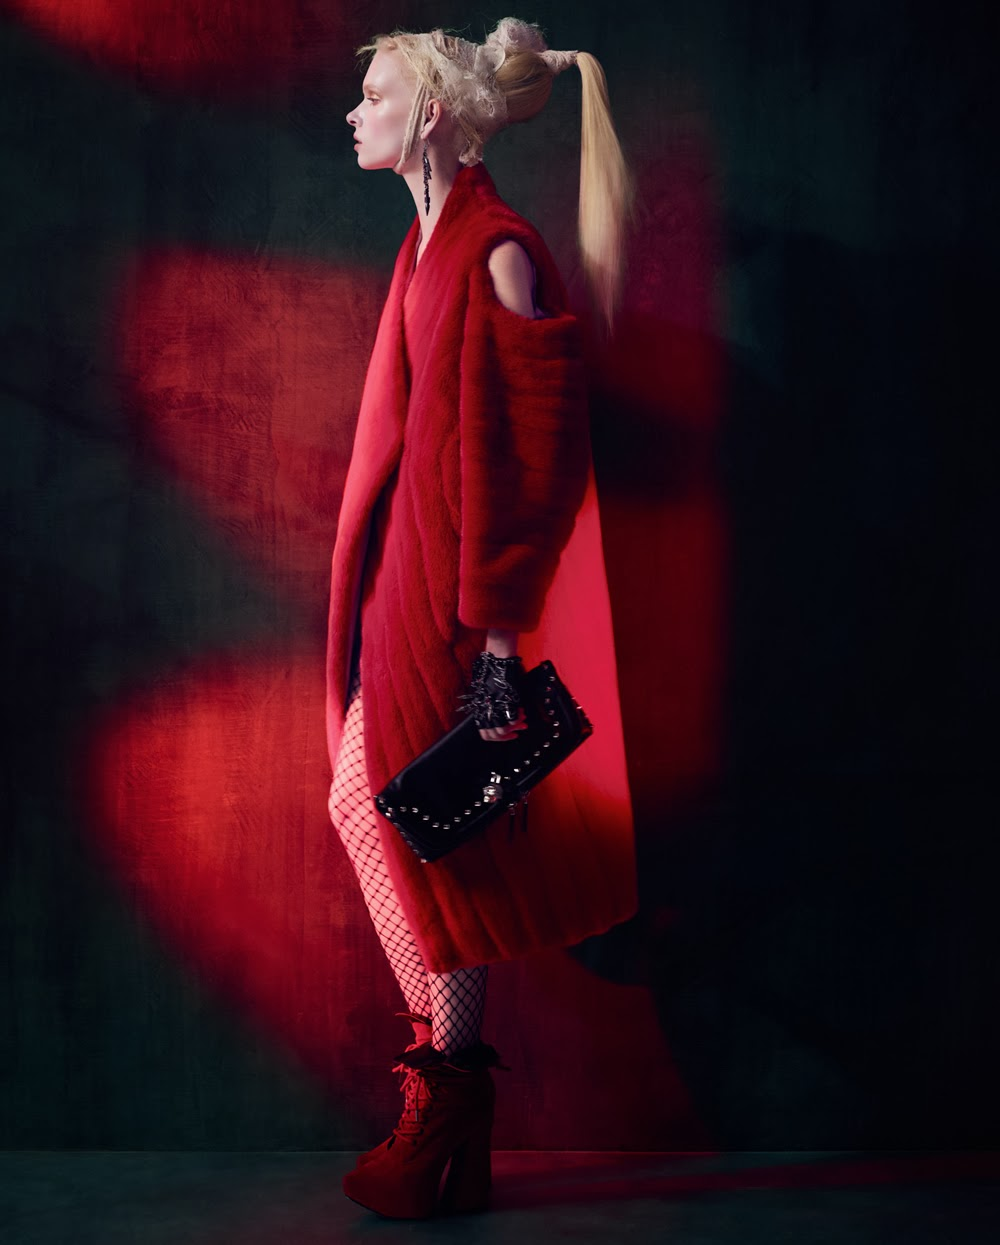 Alyona Subbotine style by Damian Foxe in How To Spend It November 2013